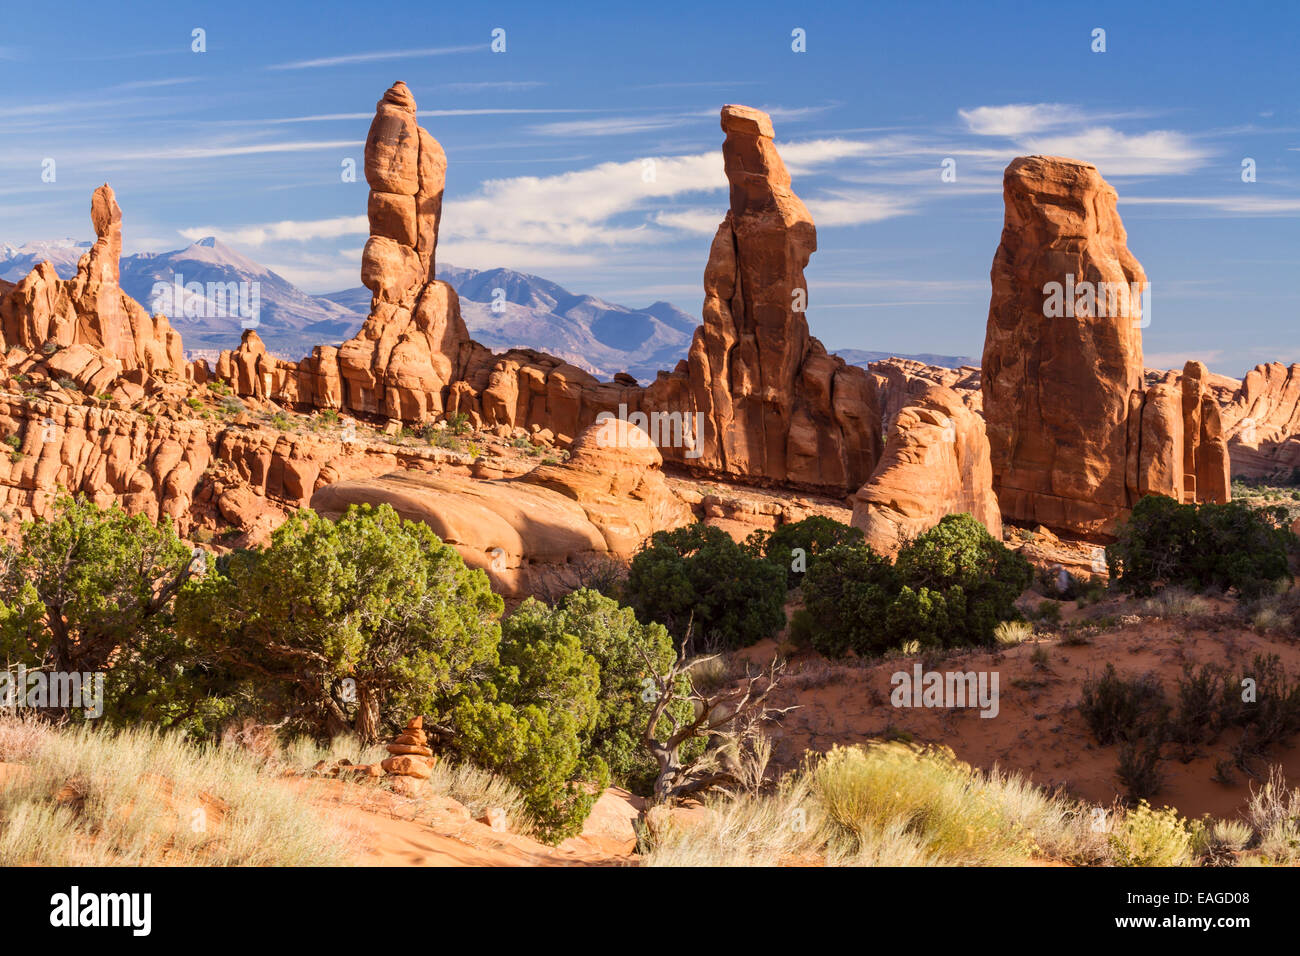 Four 'Marching Men' sandstone pillars in front of the La Sal Mountains in the Klondike Bluffs area of Arches - Stock Image